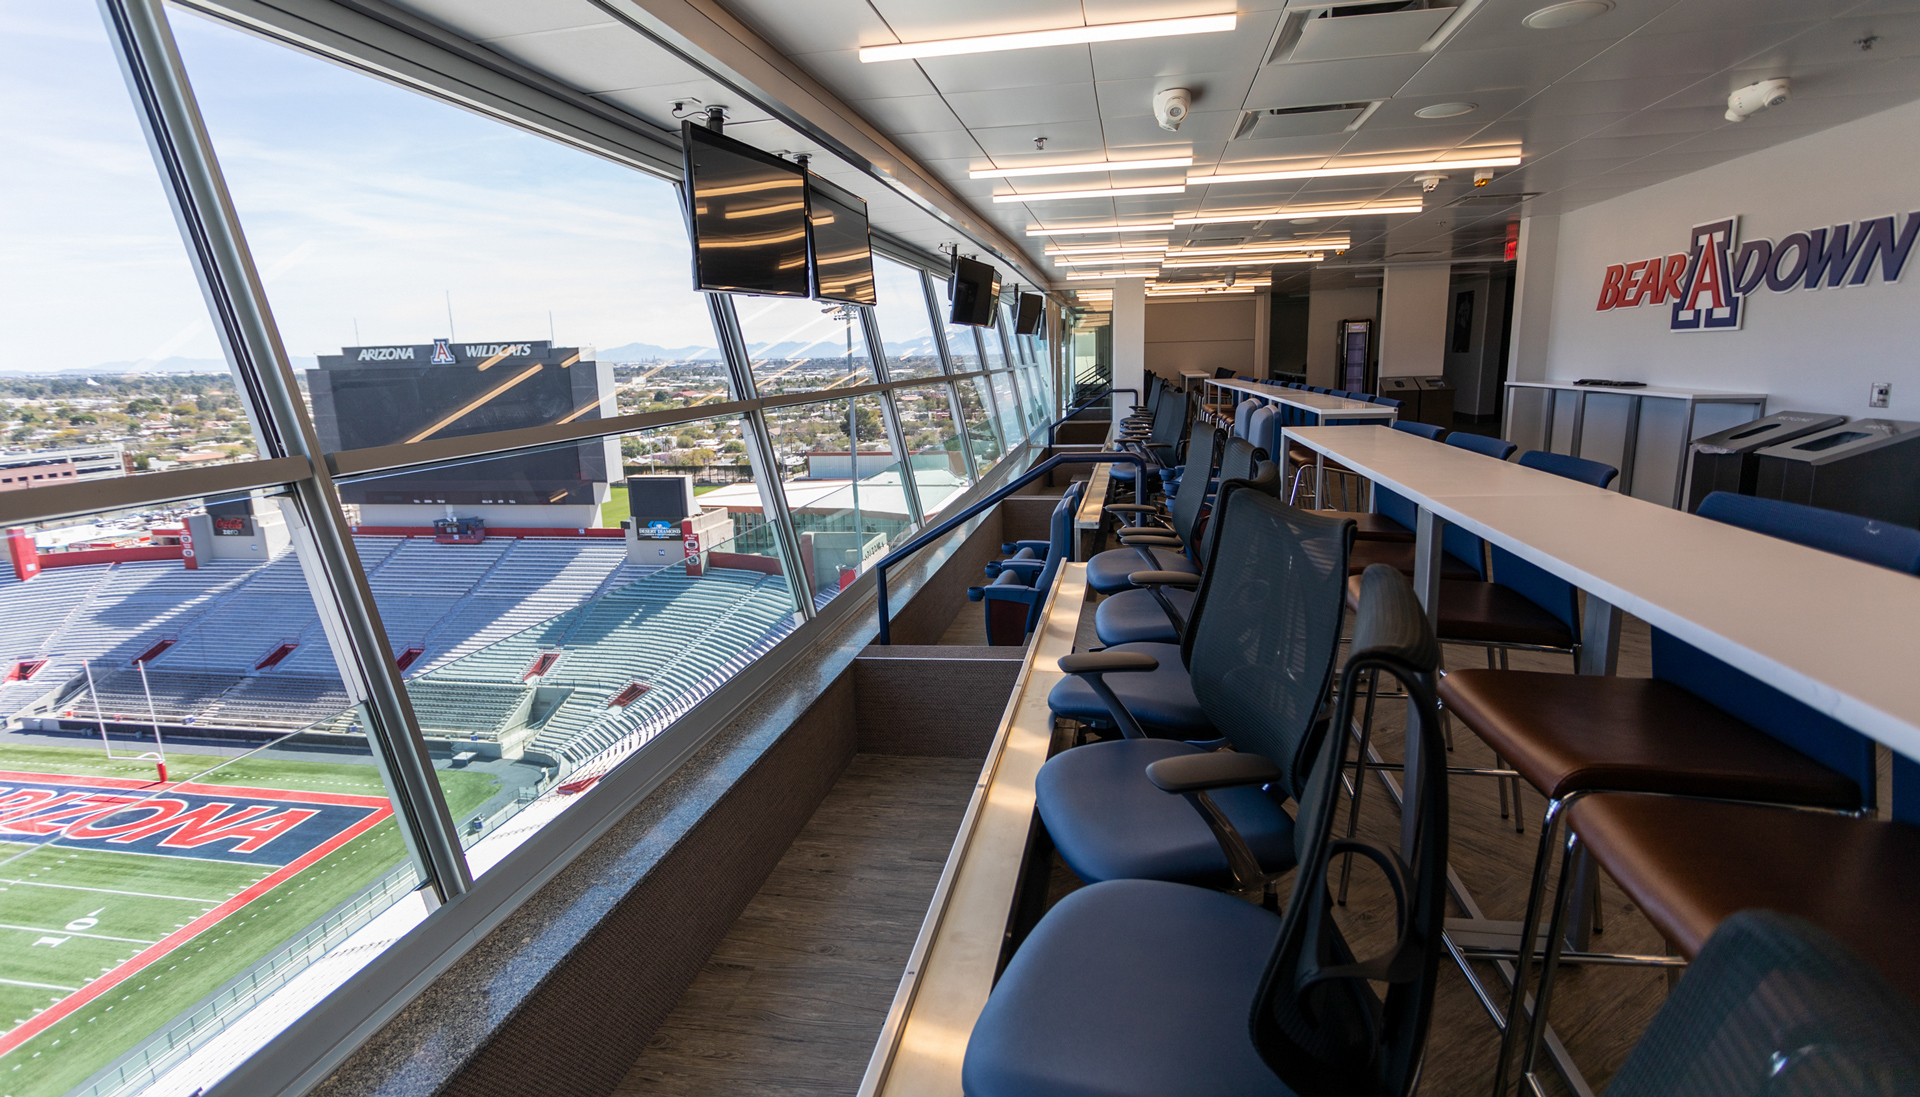 A view of the renovated presidential suite at Arizona Stadium with the football field in clear view.